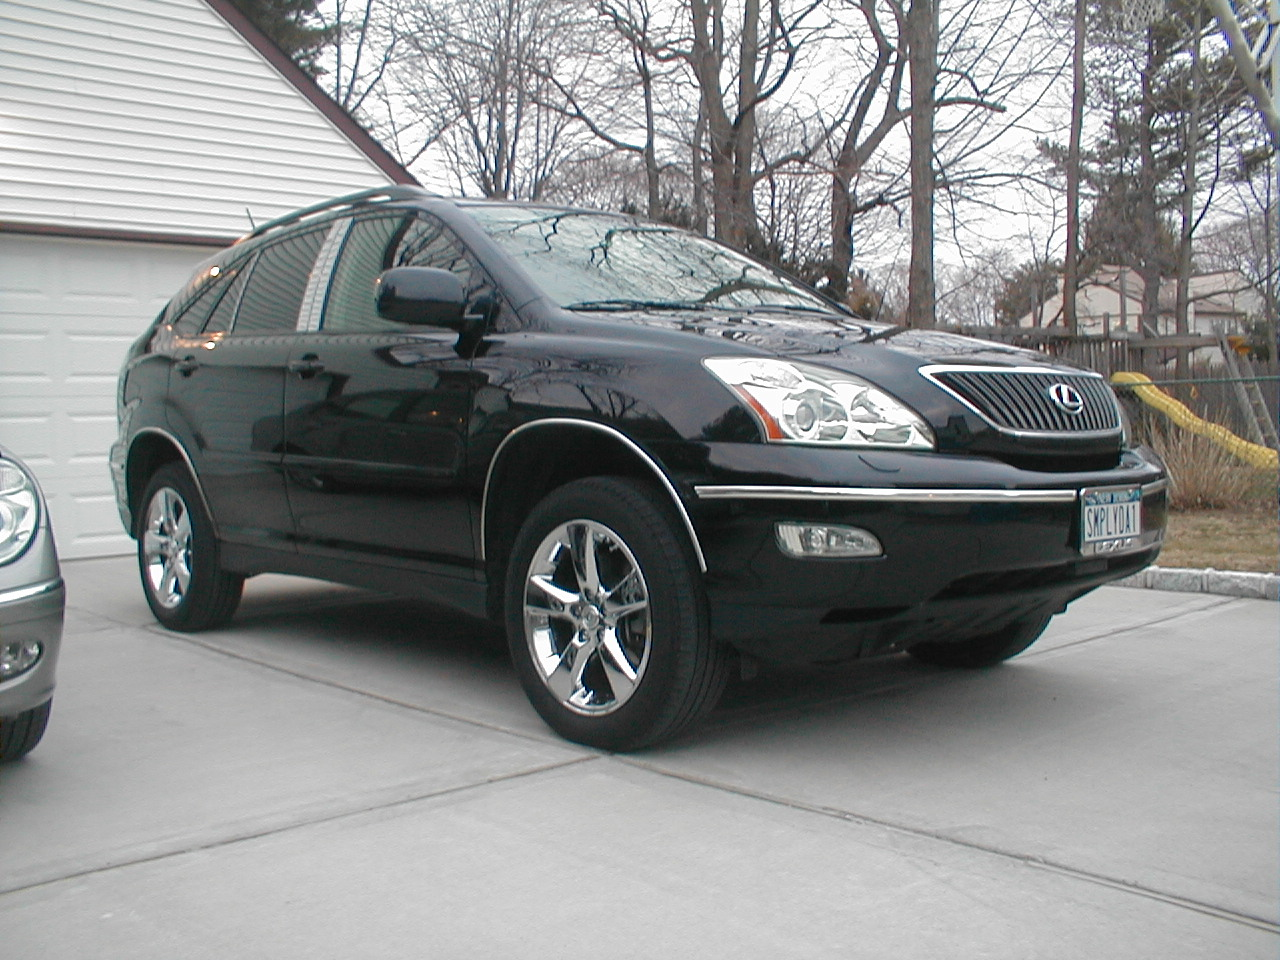 2004 Lexus RX 330 Base AWD picture, exterior